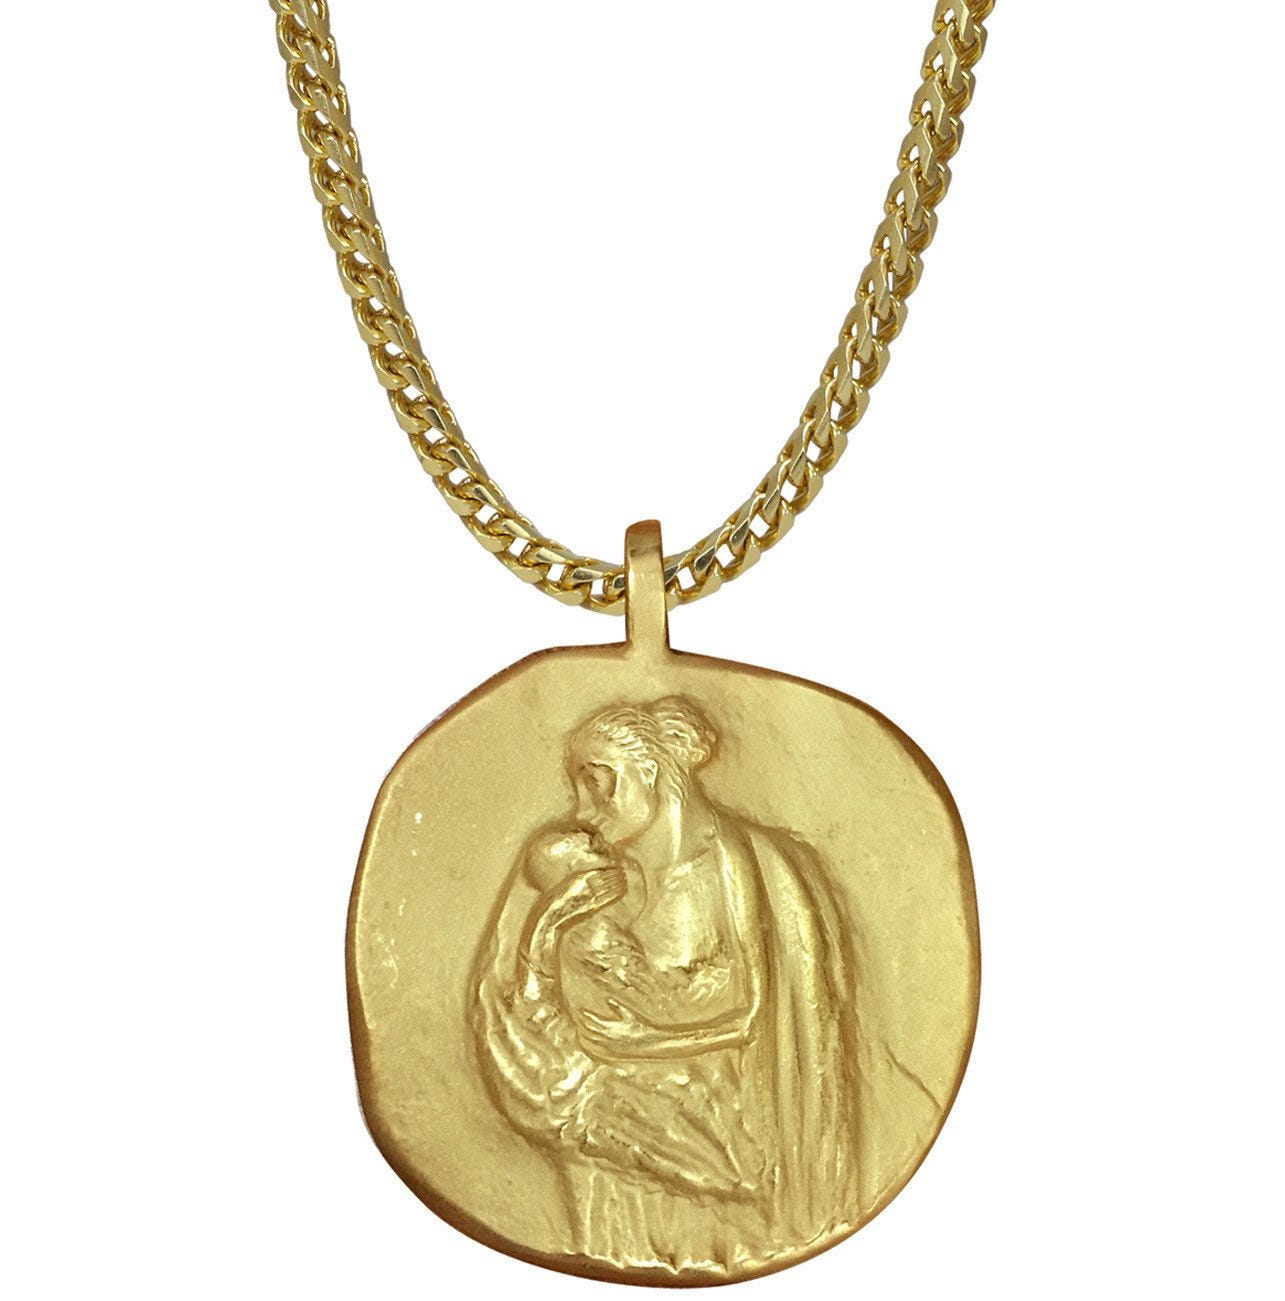 wwwimgkidcom chanel view medallion necklace men coin the l pendant gold imgkidcom larger image large